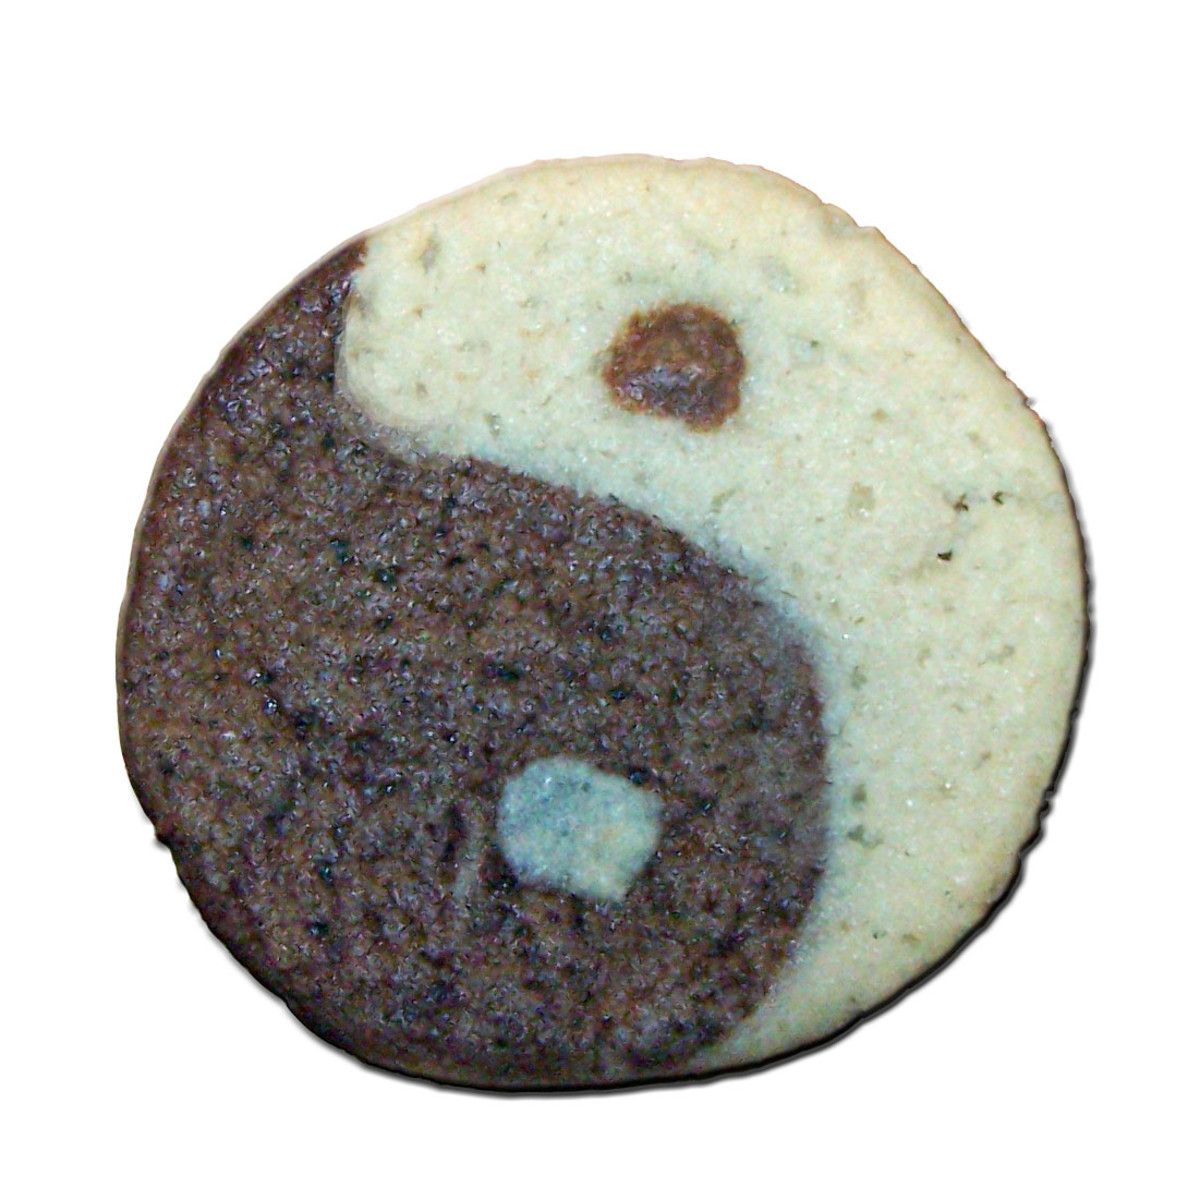 The equinox Yin/Yang Cookie look awesome, don't they?